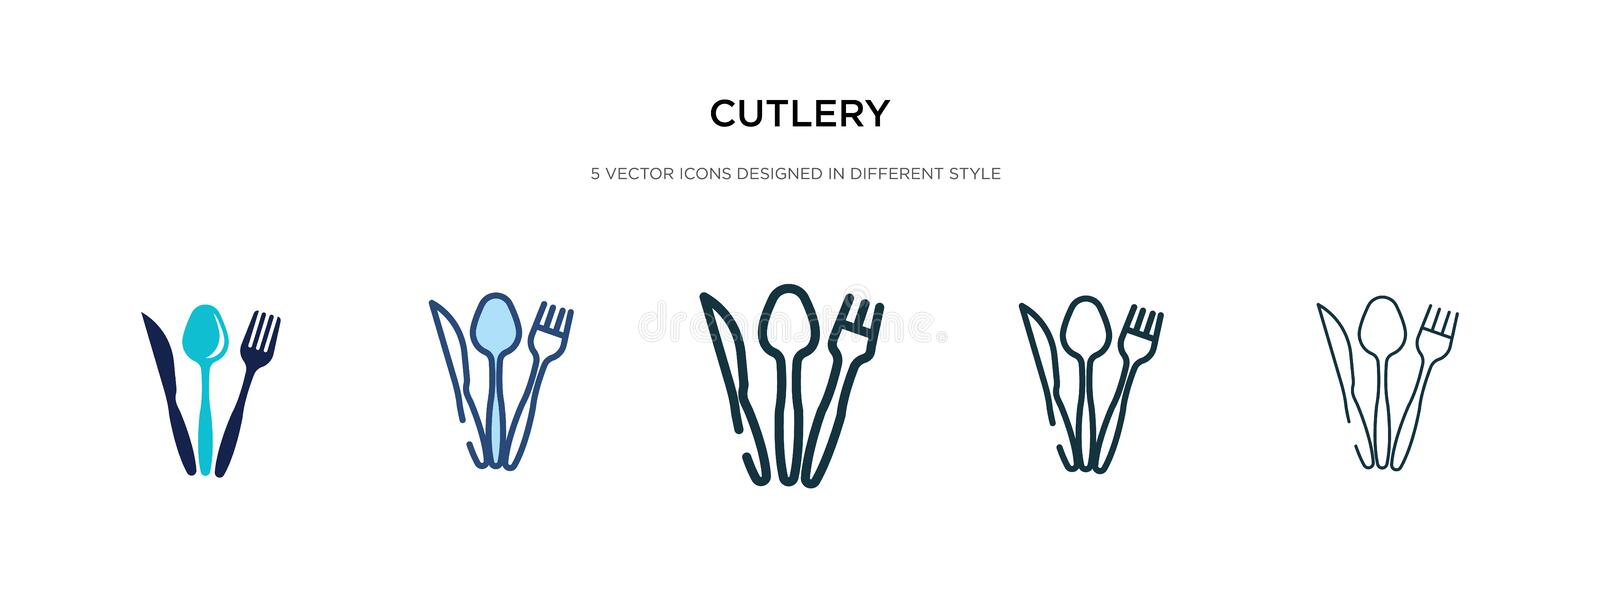 Cutlery icon in different style vector illustration. two colored and black cutlery vector icons designed in filled, outline, line vector illustration